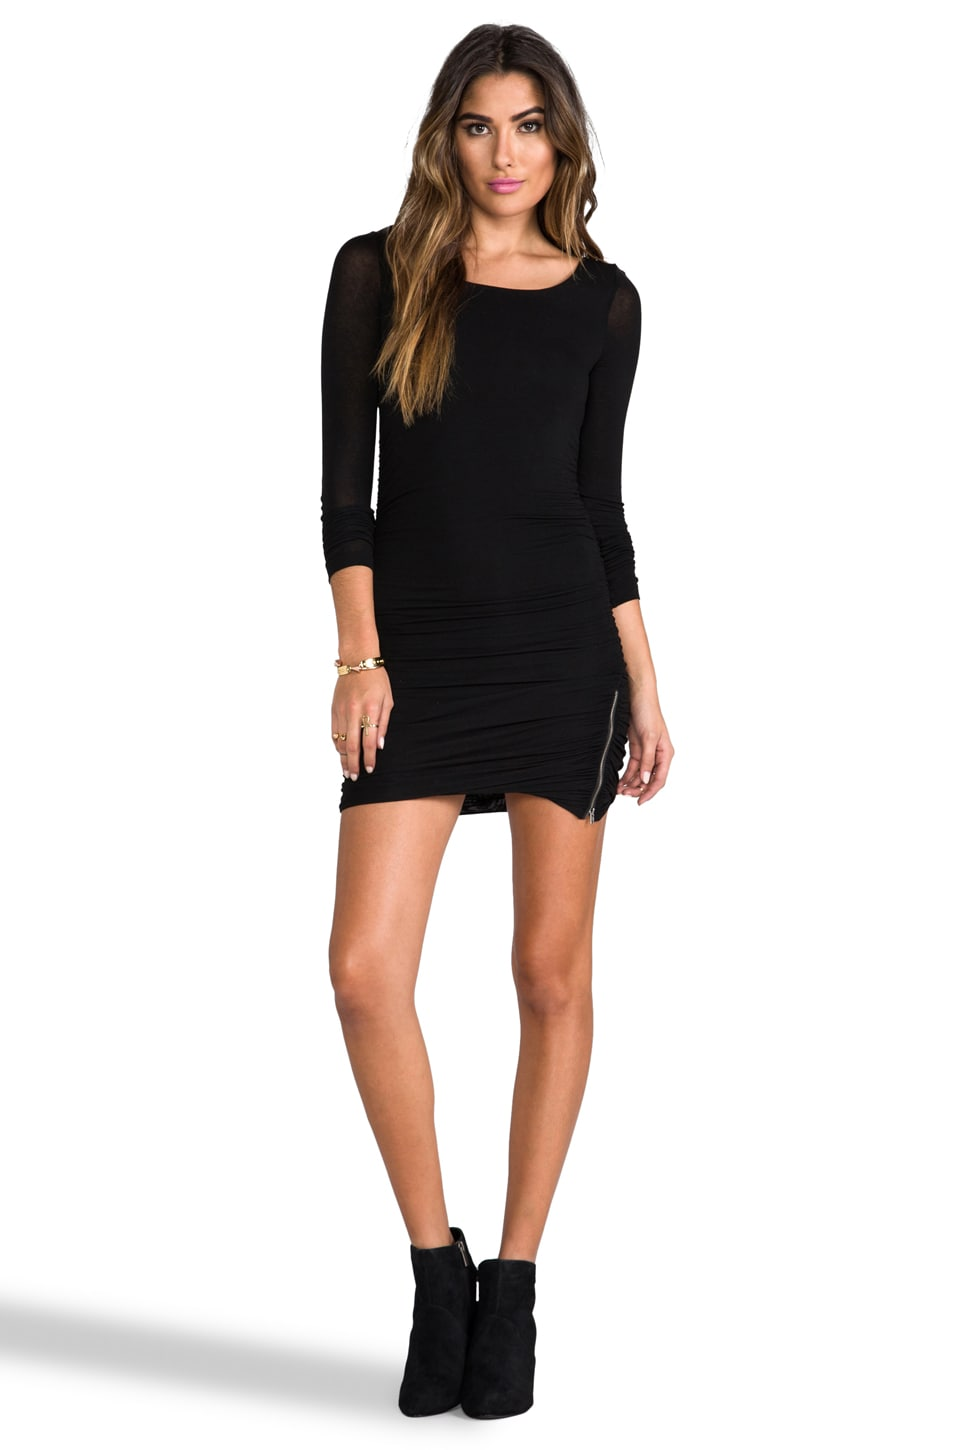 Splendid Long Sleeve Zipper Dress in Black